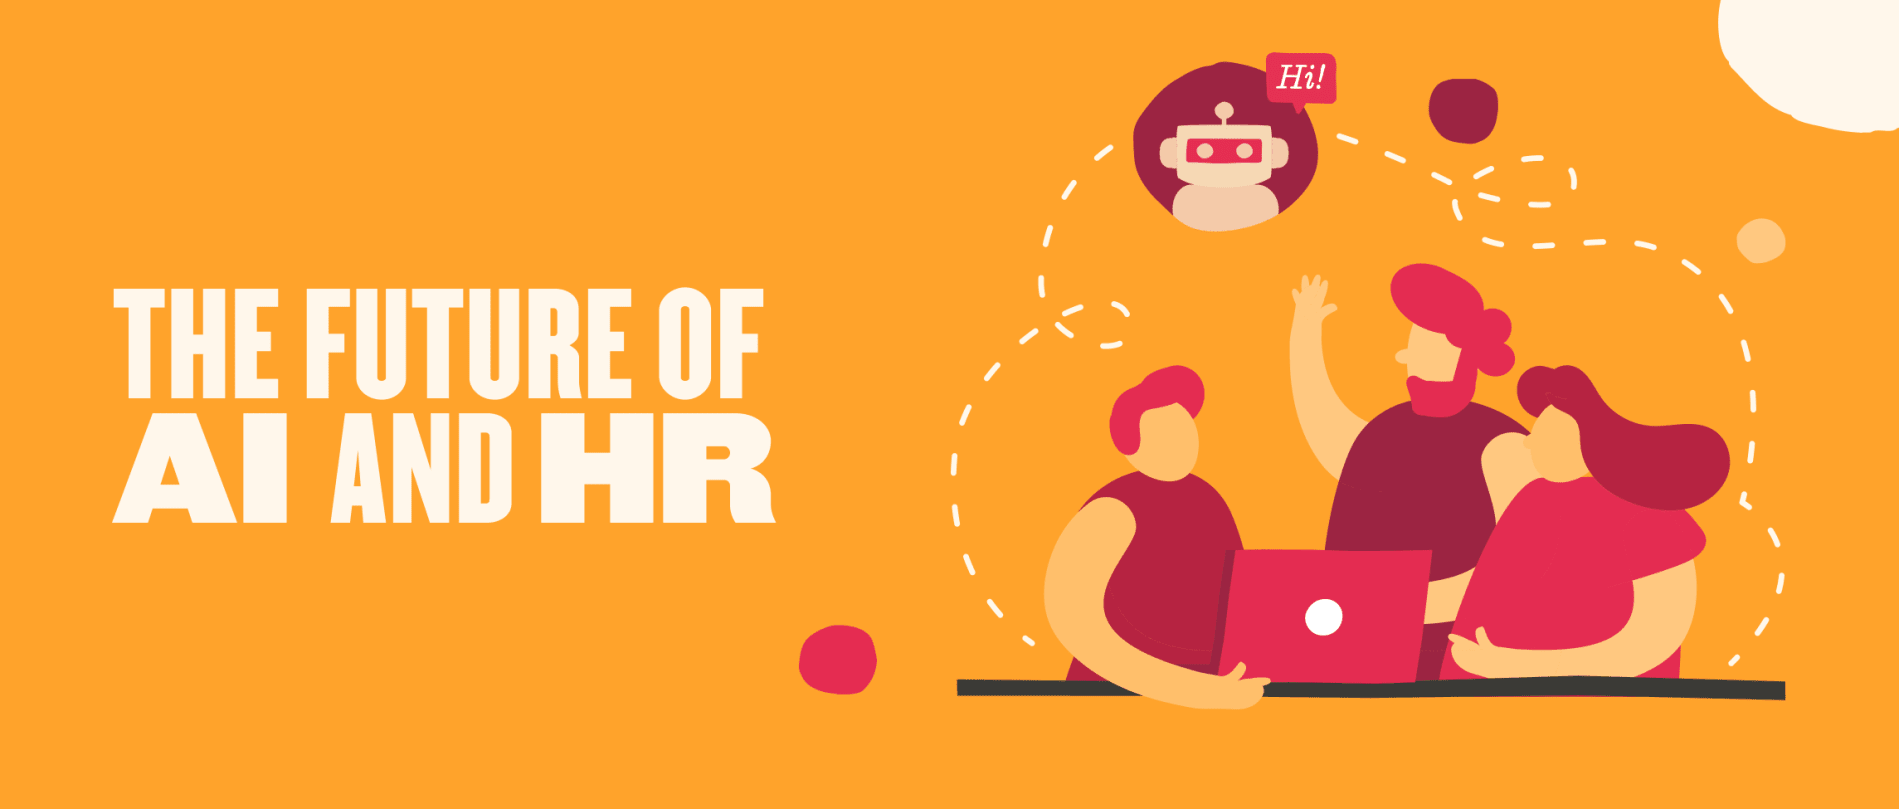 The future of AI and HR